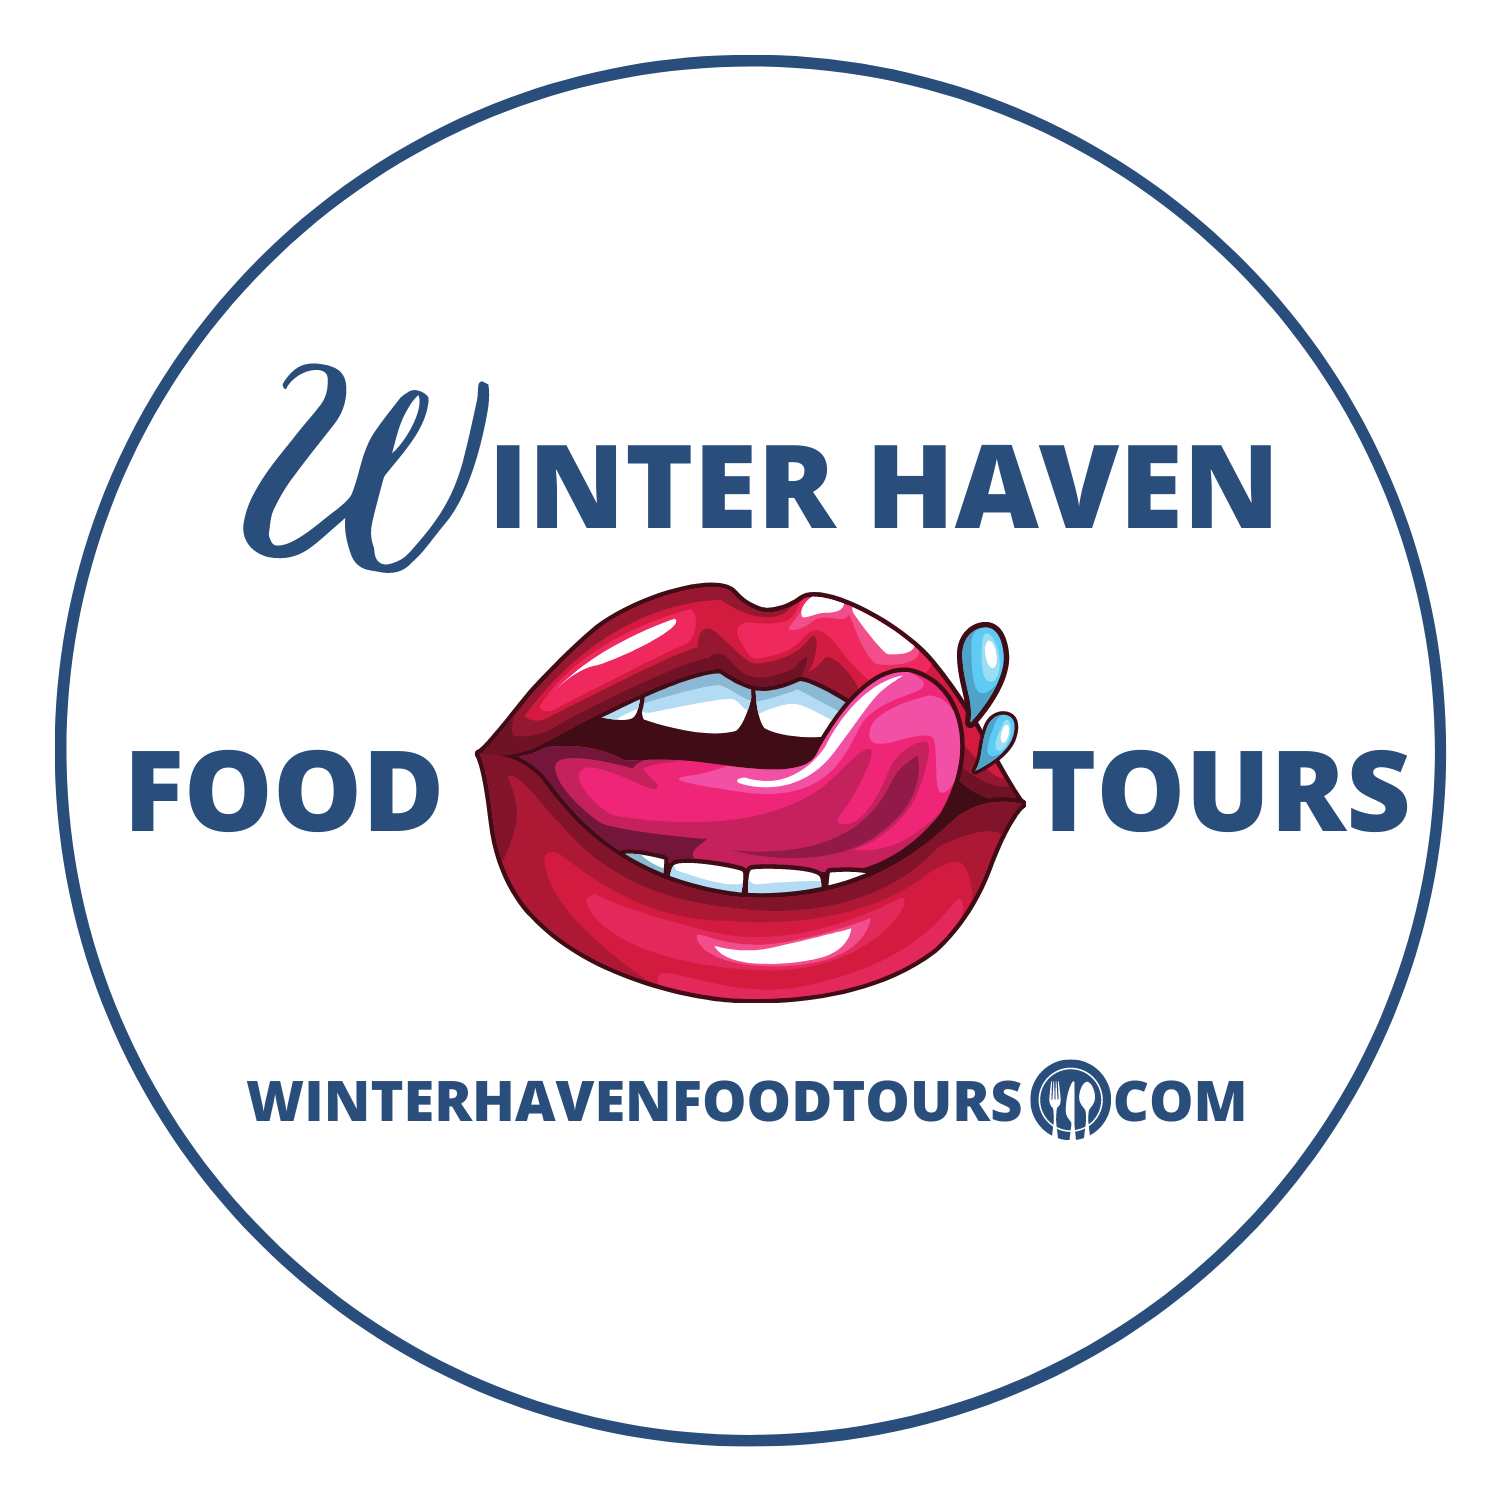 Winter Haven Food Tours